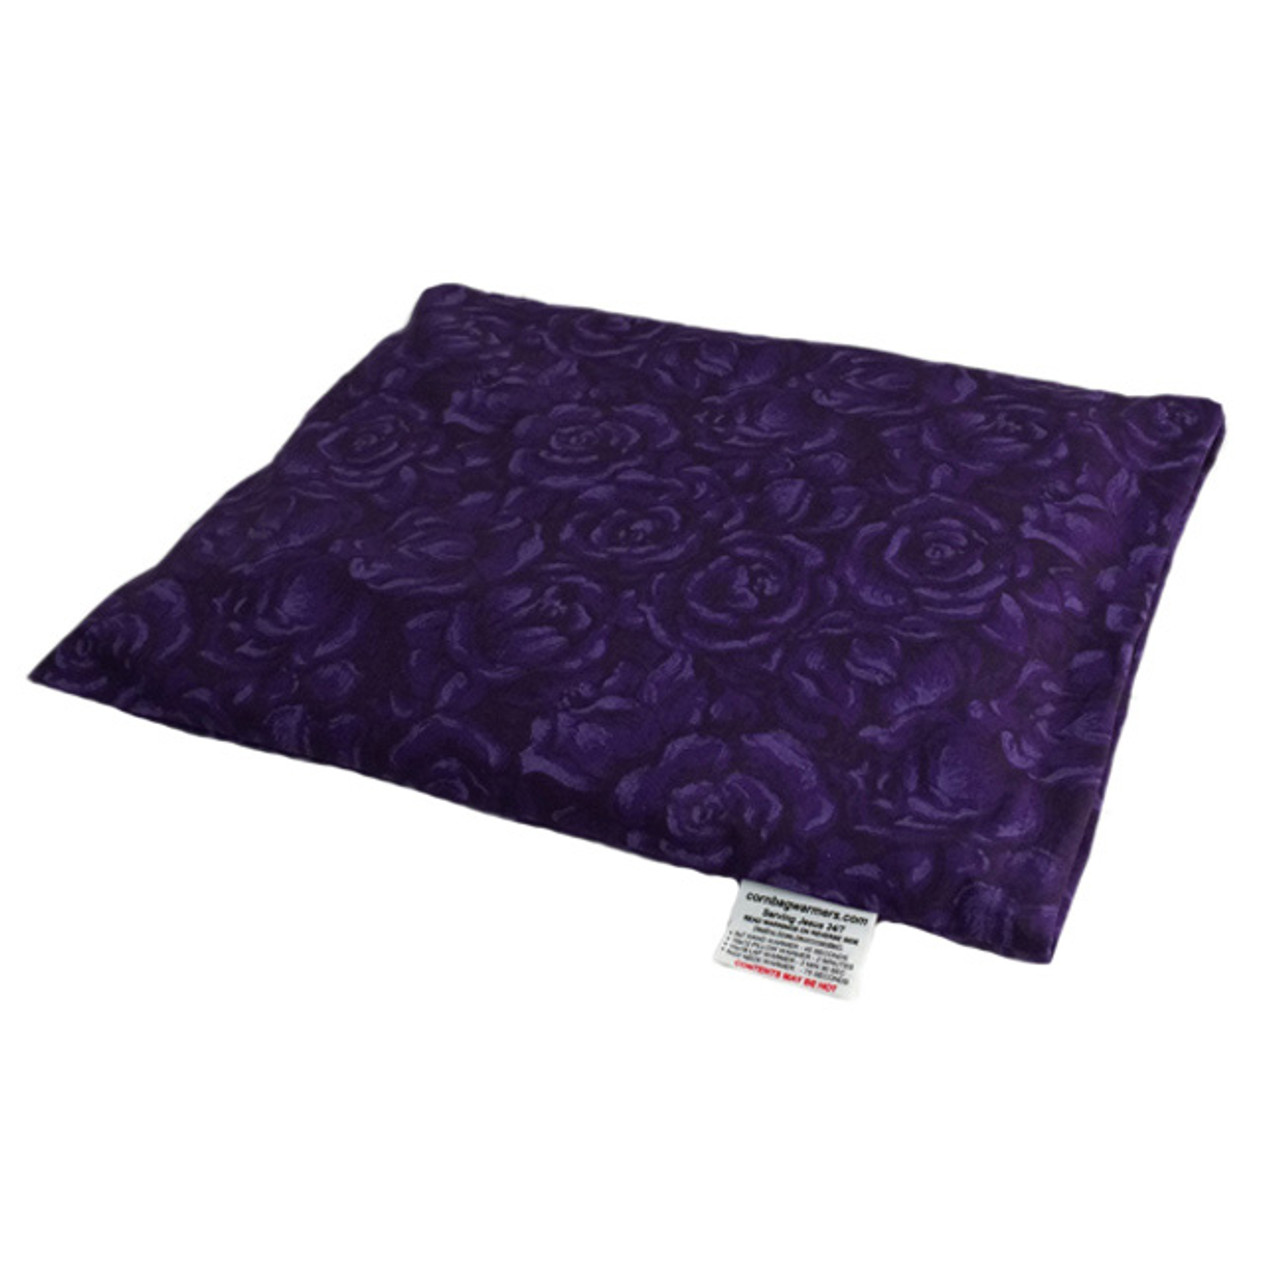 Deep Purple Roses Pillow Warmer Microwave Heating Pad